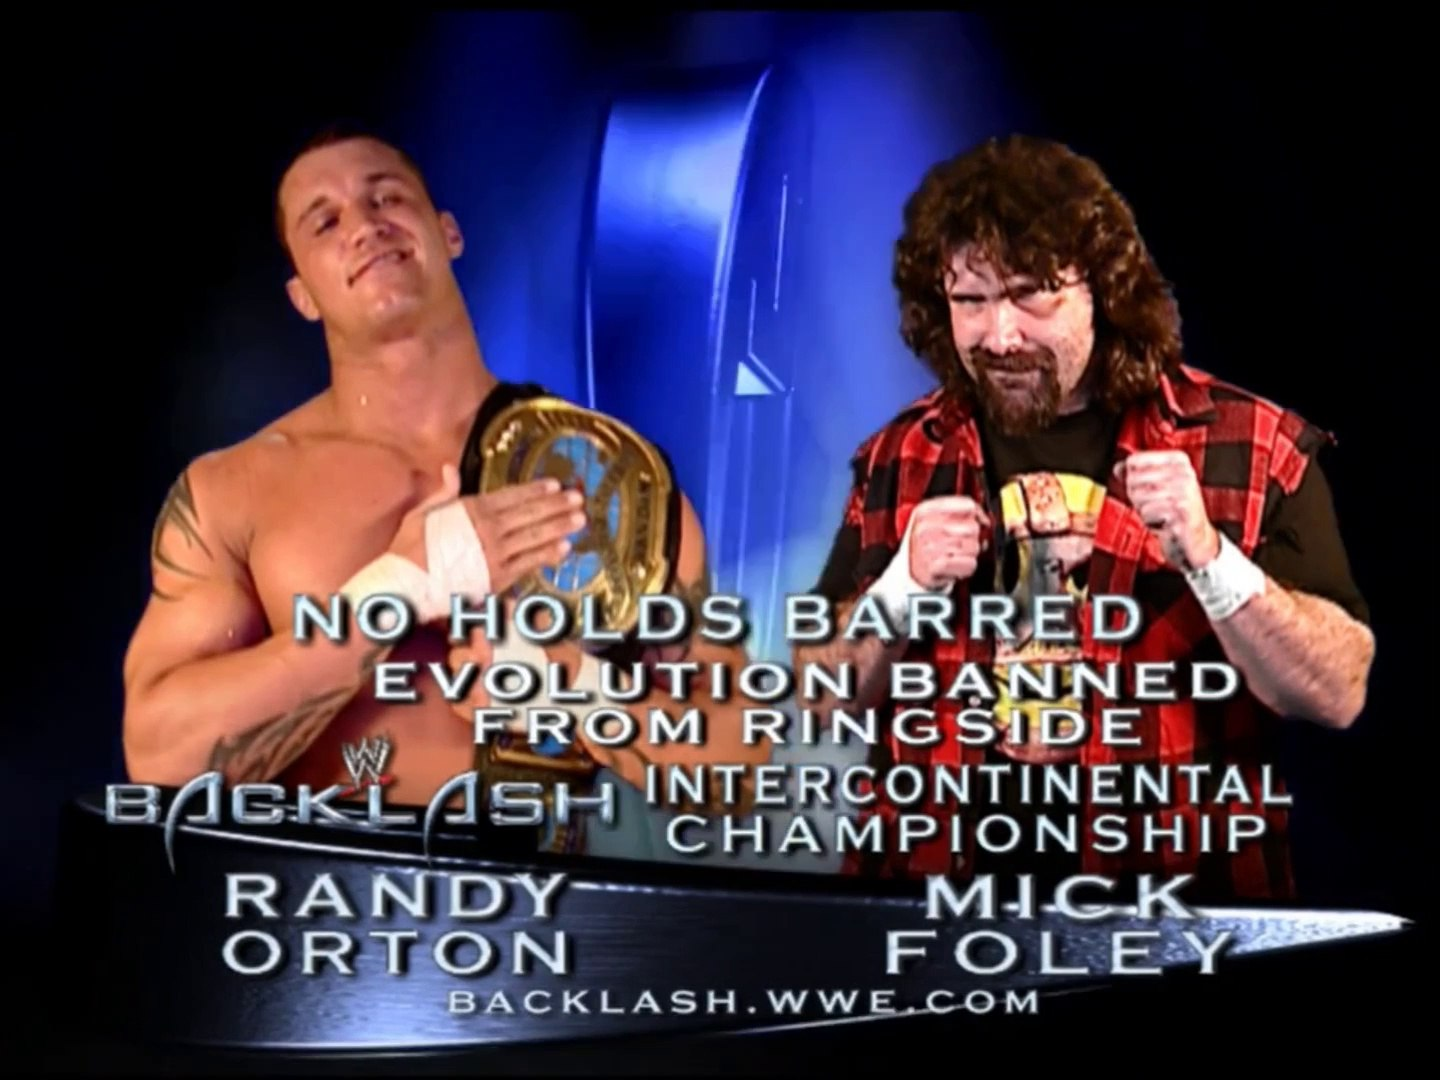 Randy Orton Vs Mick Foley Backlash 2004 Full Match - video Dailymotion